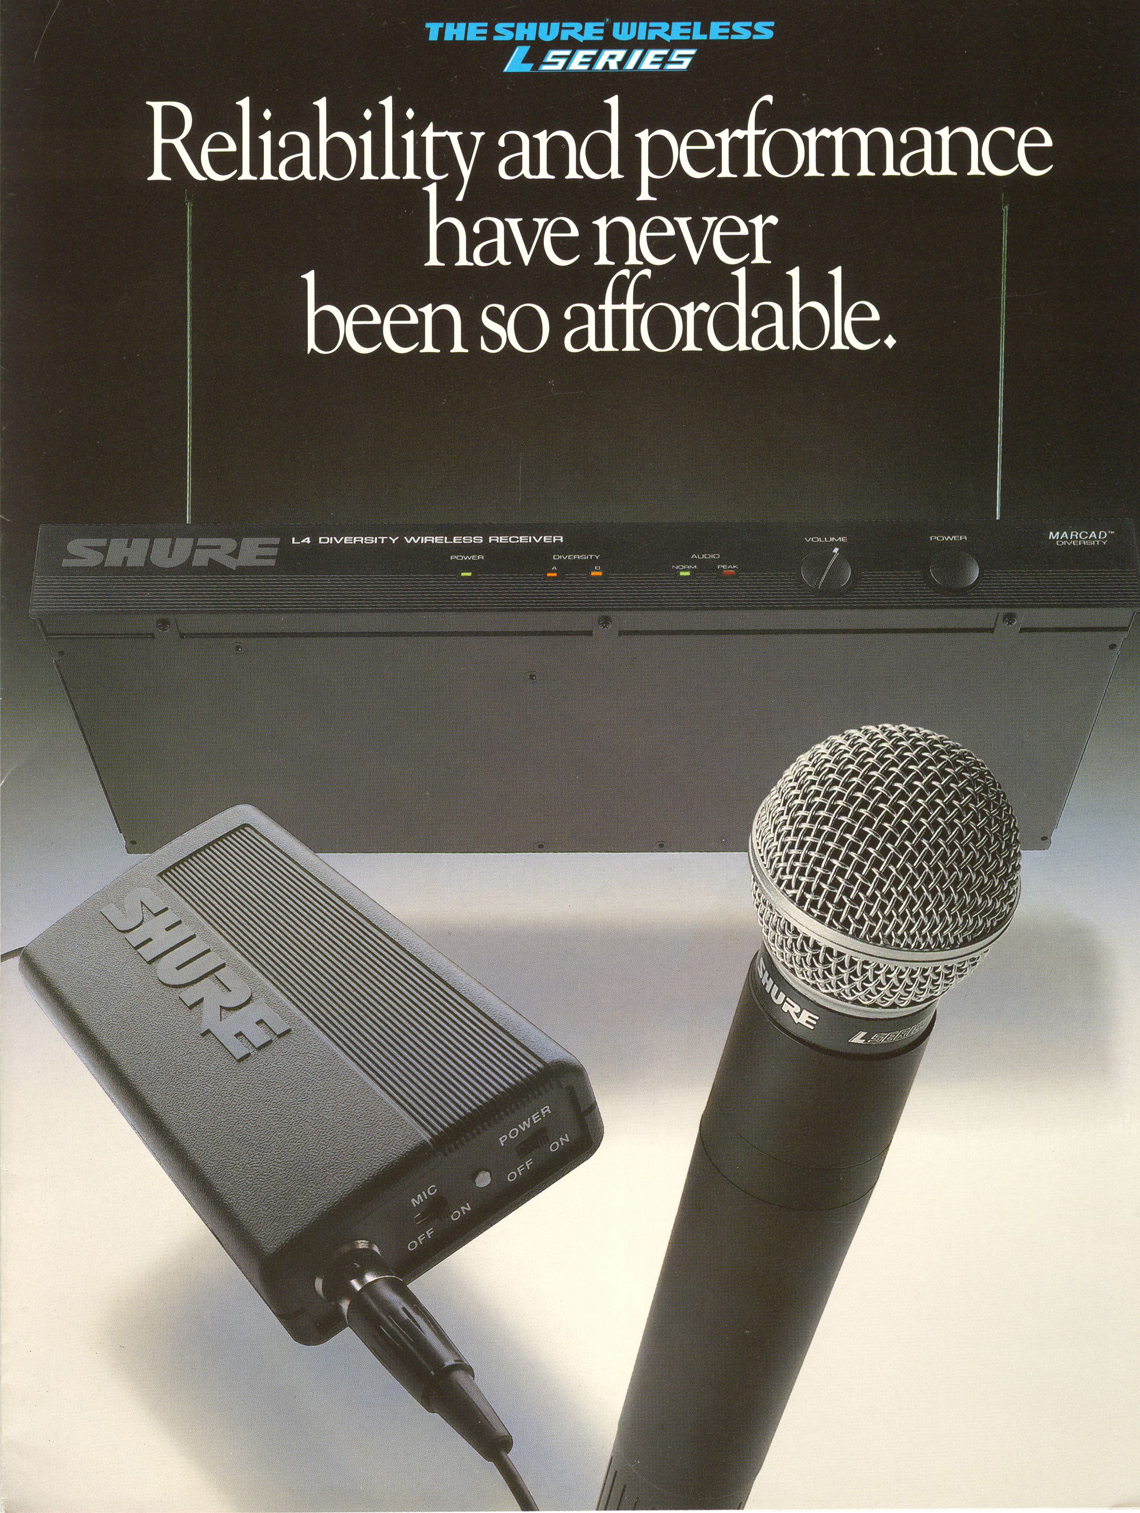 Shure L Series Wireless System - Classic Advertisement